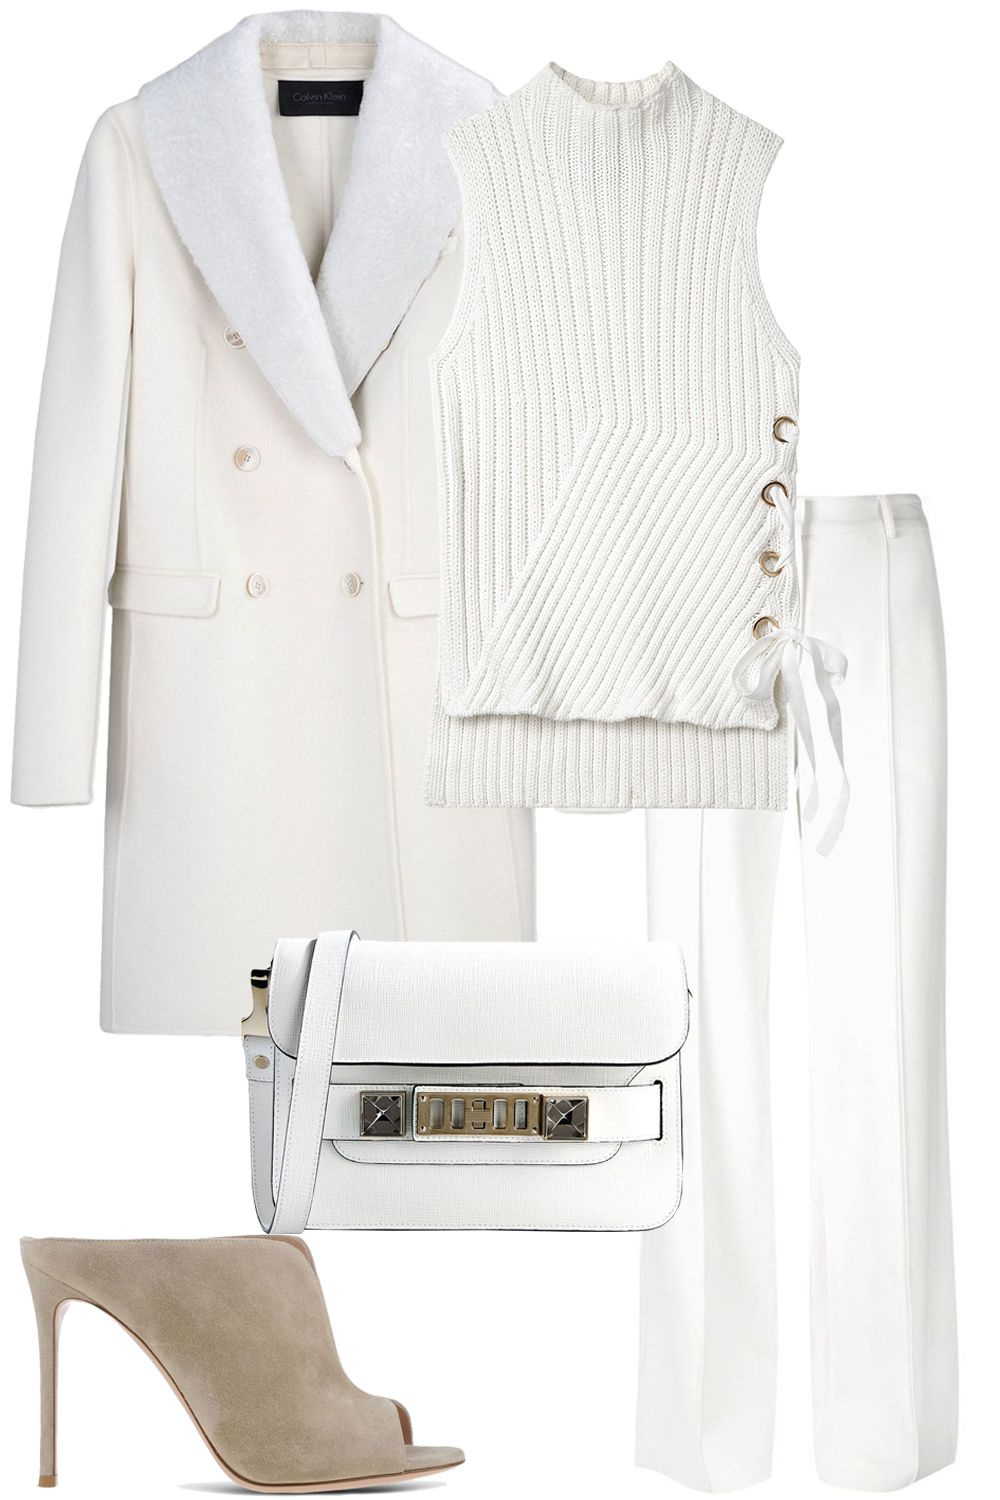 "<strong><i>Calvin Klein</i></strong><i> Collection coat, $1,208, <a href=""https://shop.harpersbazaar.com/designers/c/calvin-klein-collection/white-wool-and-shearling-coat-5438.html"" target=""_blank"">shopBAZAAR.com</a>&#x3B; </i><strong><i>10 Crosby Derek Lam</i></strong><i> top, $395, <a href=""https://shop.harpersbazaar.com/designers/0-9/10-crosby-derek-lam/sleeveless-sweater-with-grommet-detail-7746.html"" target=""_blank"">shopBAZAAR.com</a>&#x3B; </i><strong><i>Adam Lippes</i></strong><i> pant, $790, <a href=""https://shop.harpersbazaar.com/designers/a/adam-lippes/wideleg-trouser-7709.html"" target=""_blank"">shopBAZAAR.com</a>&#x3B; </i><strong><i>Gianvito Rossi</i></strong><i> mules, $765, <a href=""https://shop.harpersbazaar.com/designers/g/gianvito-rossi/beige-clog-7356.html"" target=""_blank"">shopBAZAAR.com</a>&#x3B; </i><strong><i>Proenza Schouler</i></strong><i> bag, $1,620,<a href=""https://shop.harpersbazaar.com/designers/p/proenza-schouler/white-bag-7750.html"" target=""_blank"">shopBAZAAR.com</a>. </i>"